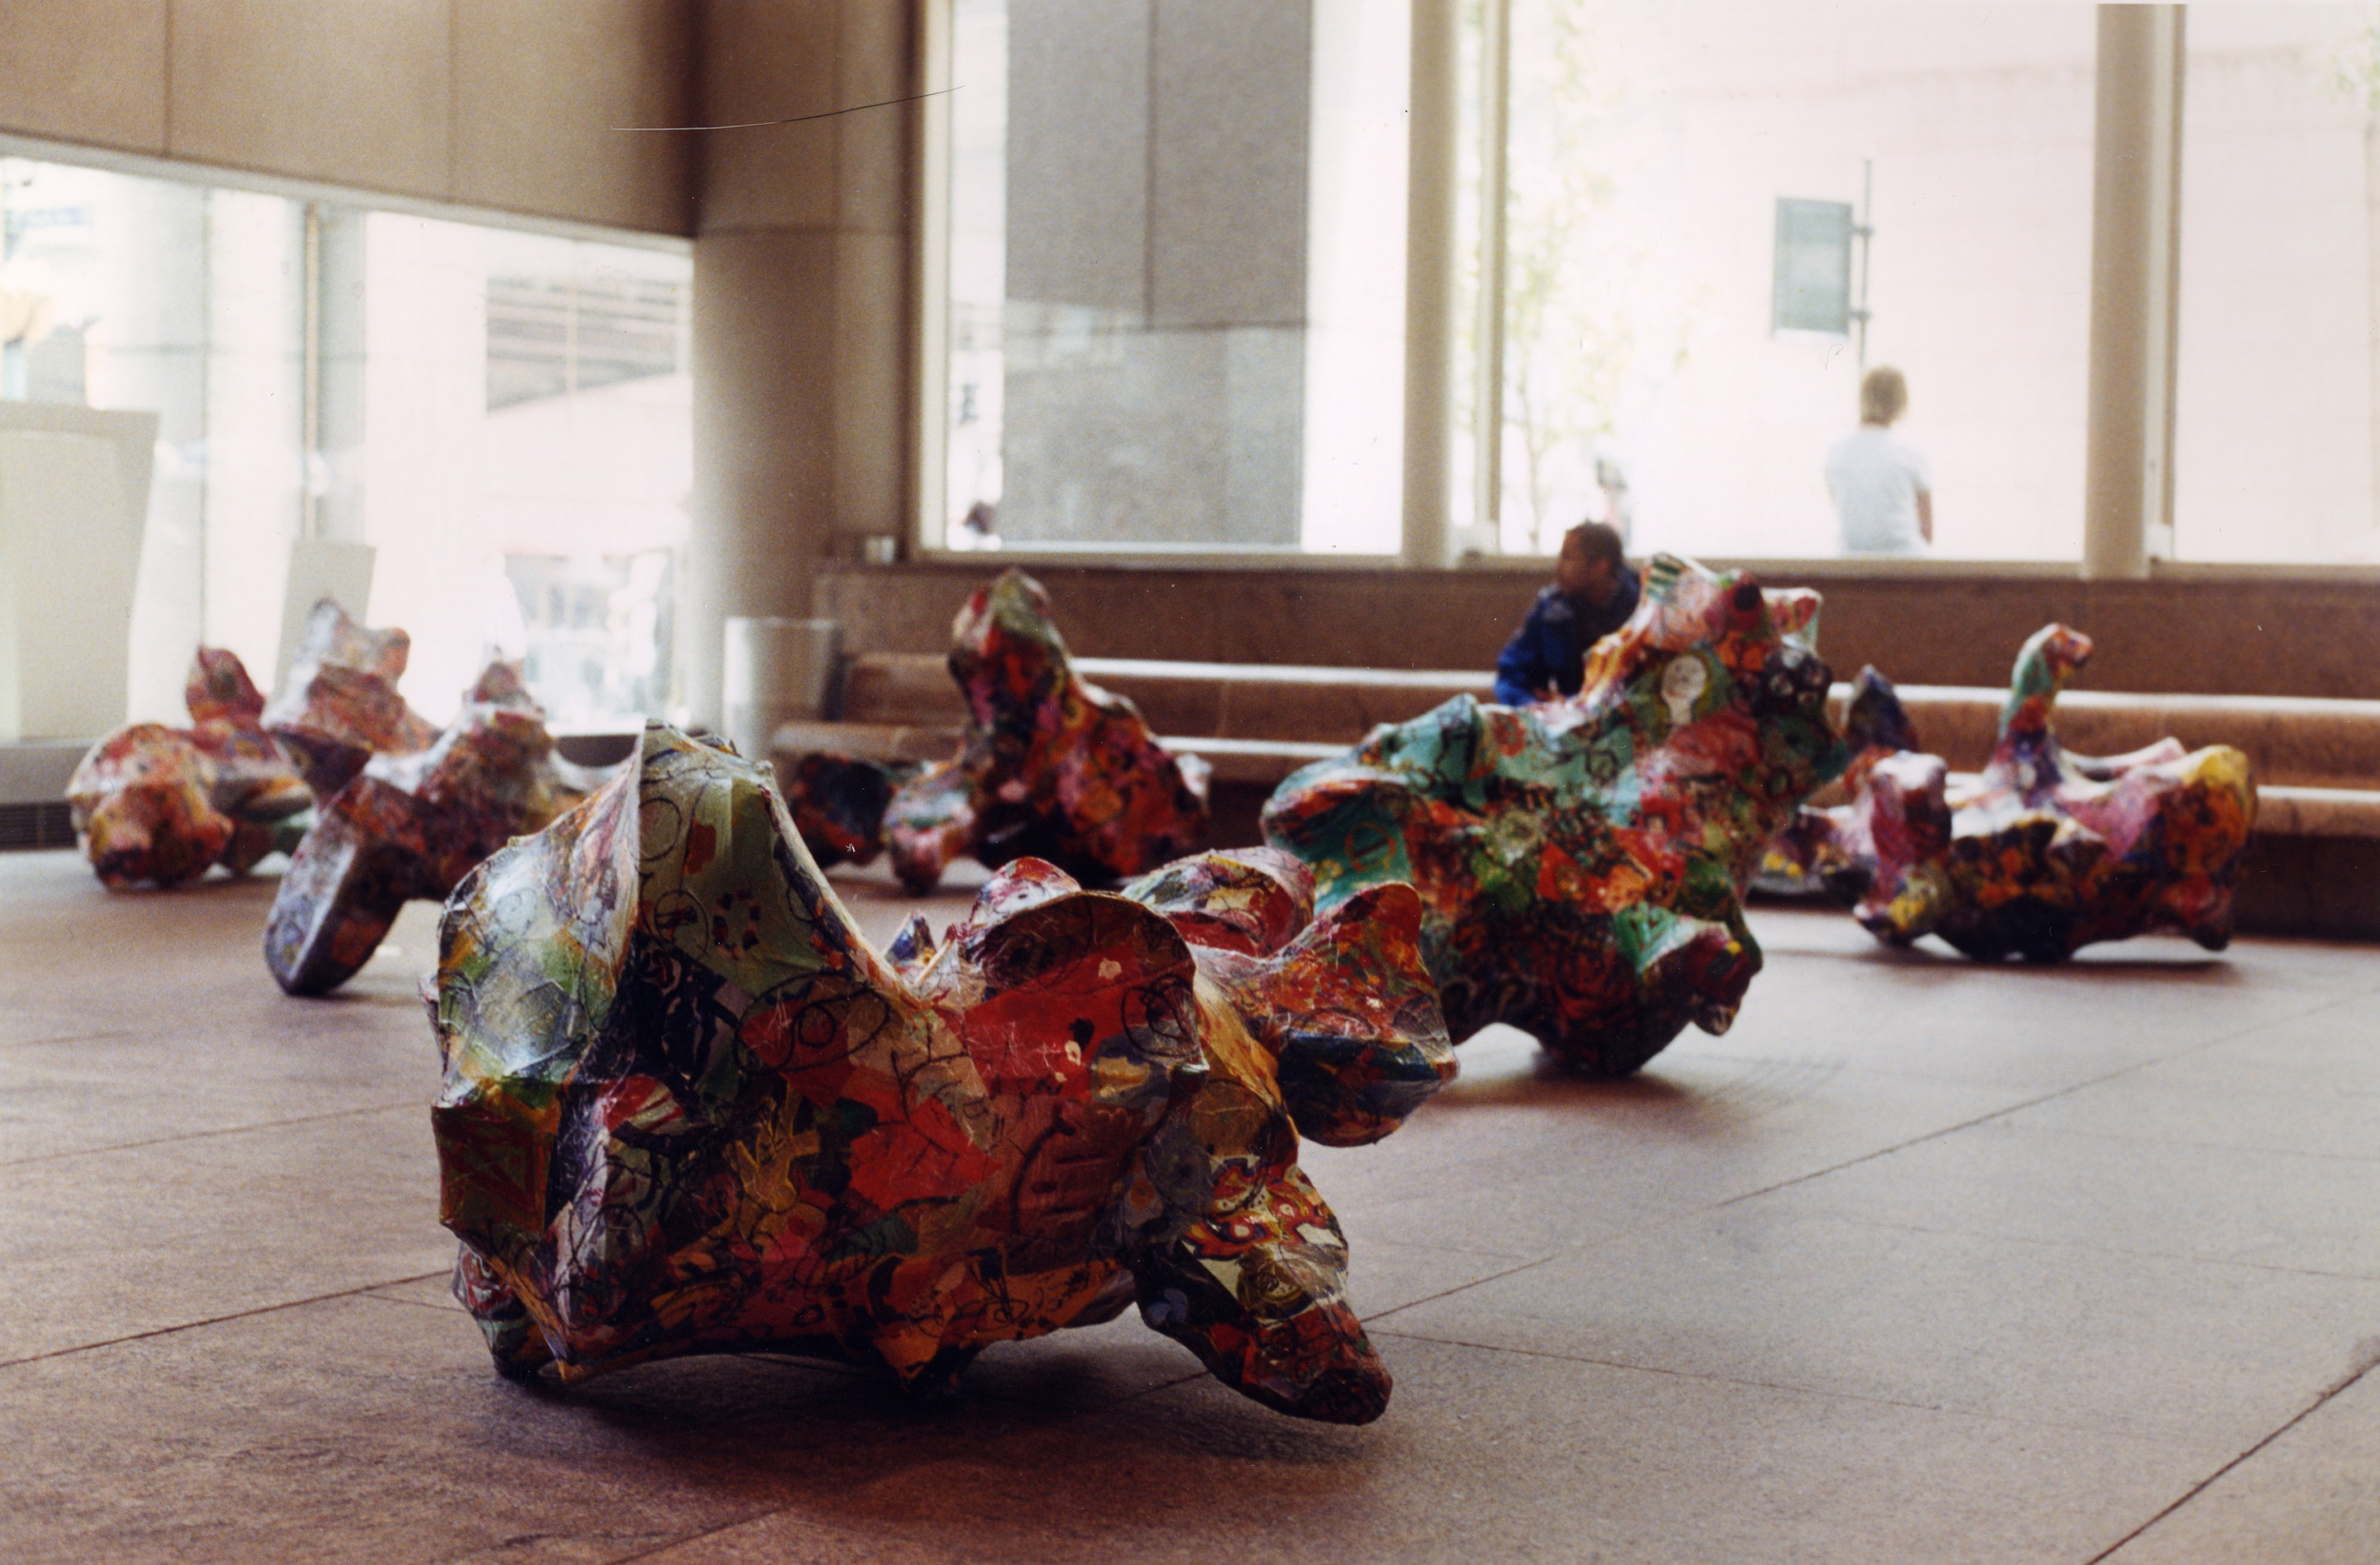 Whitney Museum at Phillip Morris, 2000